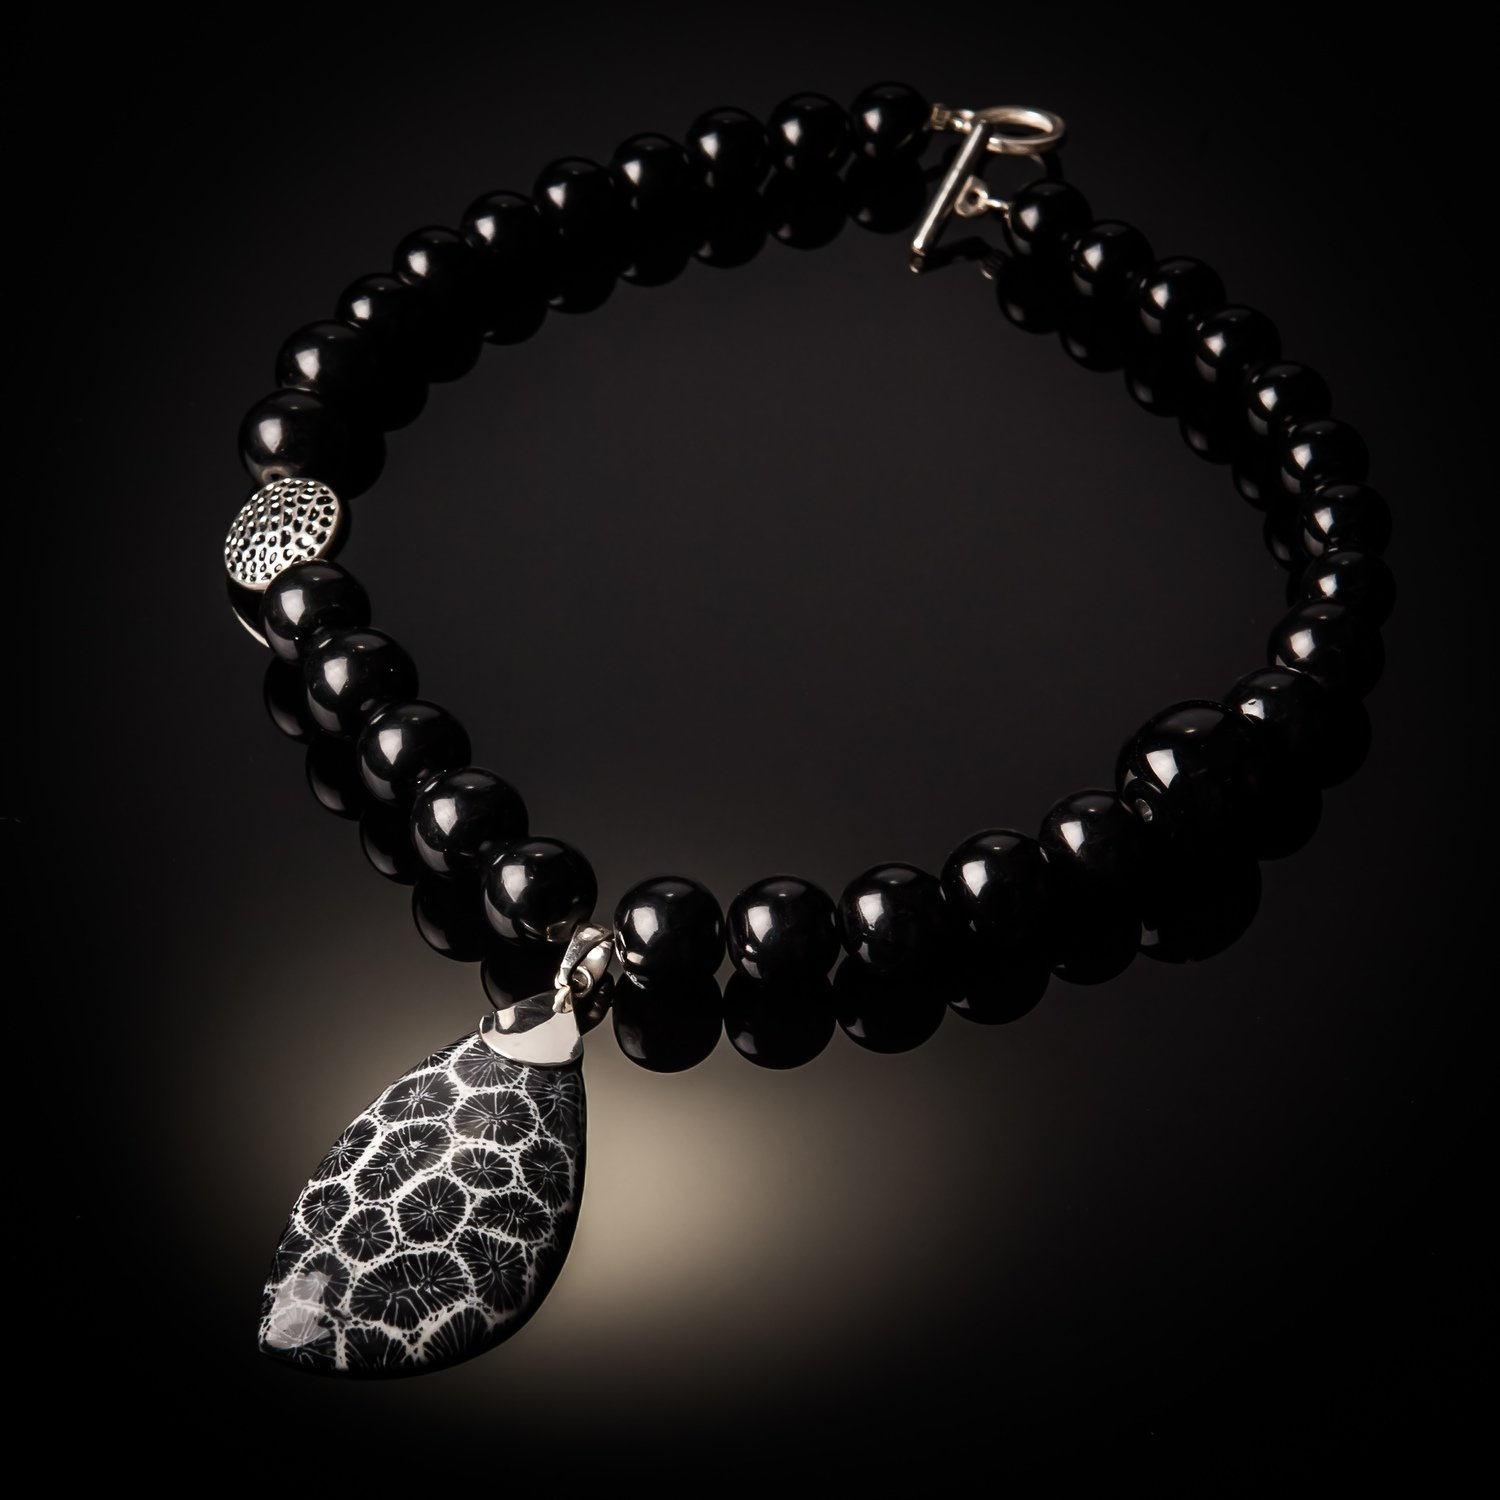 Black Coral Pendant With Black Agate Beads.